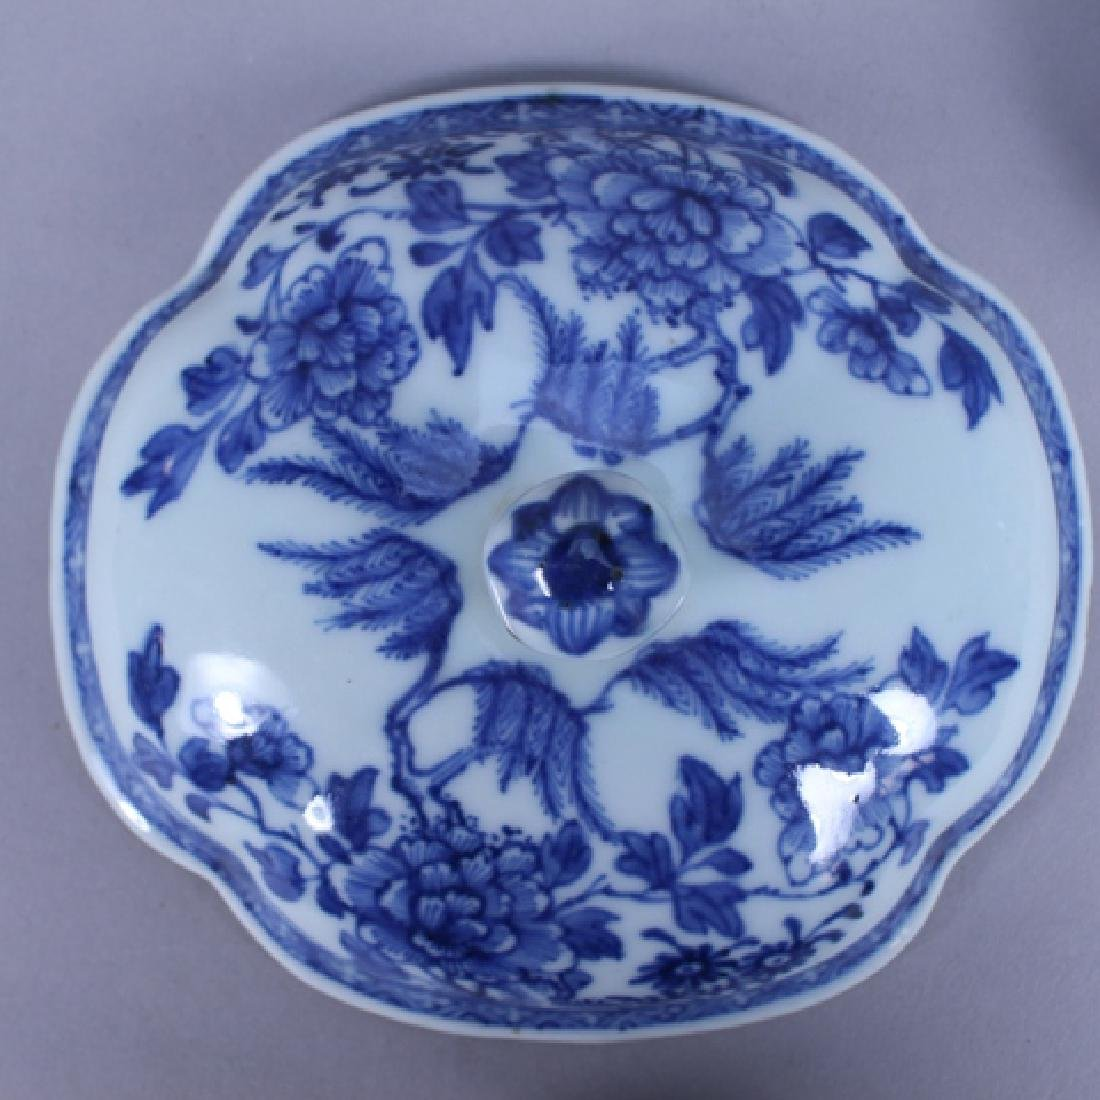 18th C. Chinese Porcelain Covered Bowl & Tray - 6